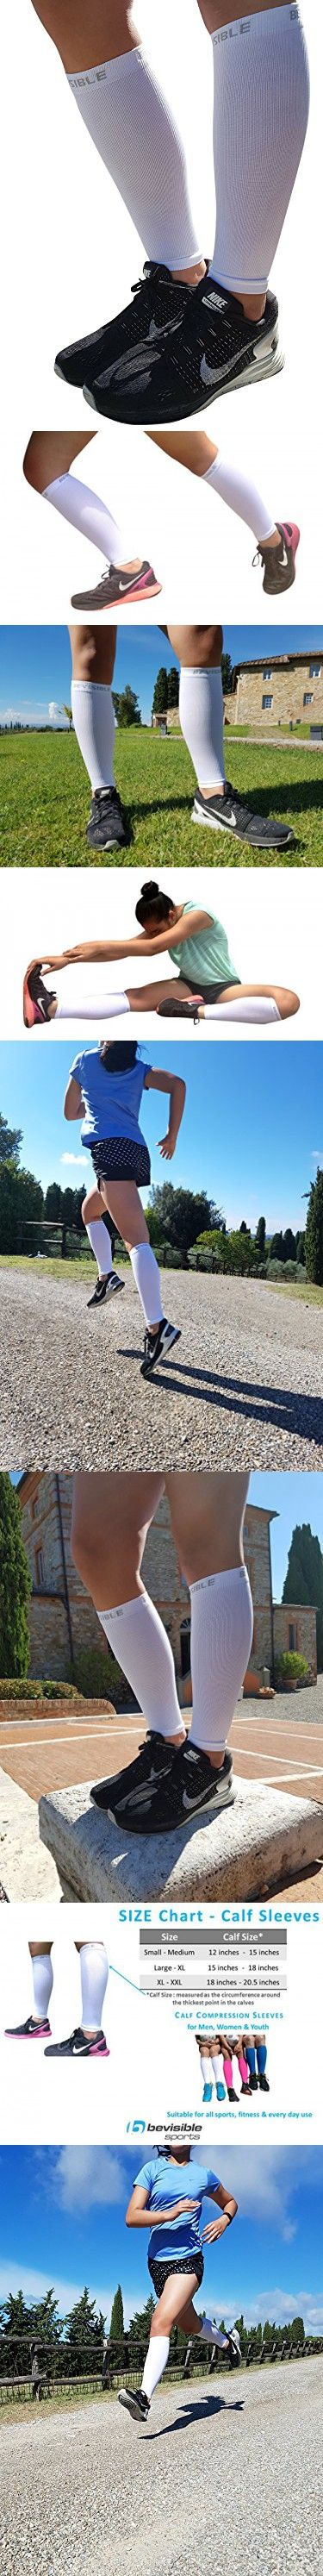 Calf Compression Sleeve - BeVisible Sports Shin Splint Leg Compression Socks for Men & Women - Great For Running, Cycling, Air Travel, Support, Circulation & Recovery - 1 Pair (White, XL-XXL)